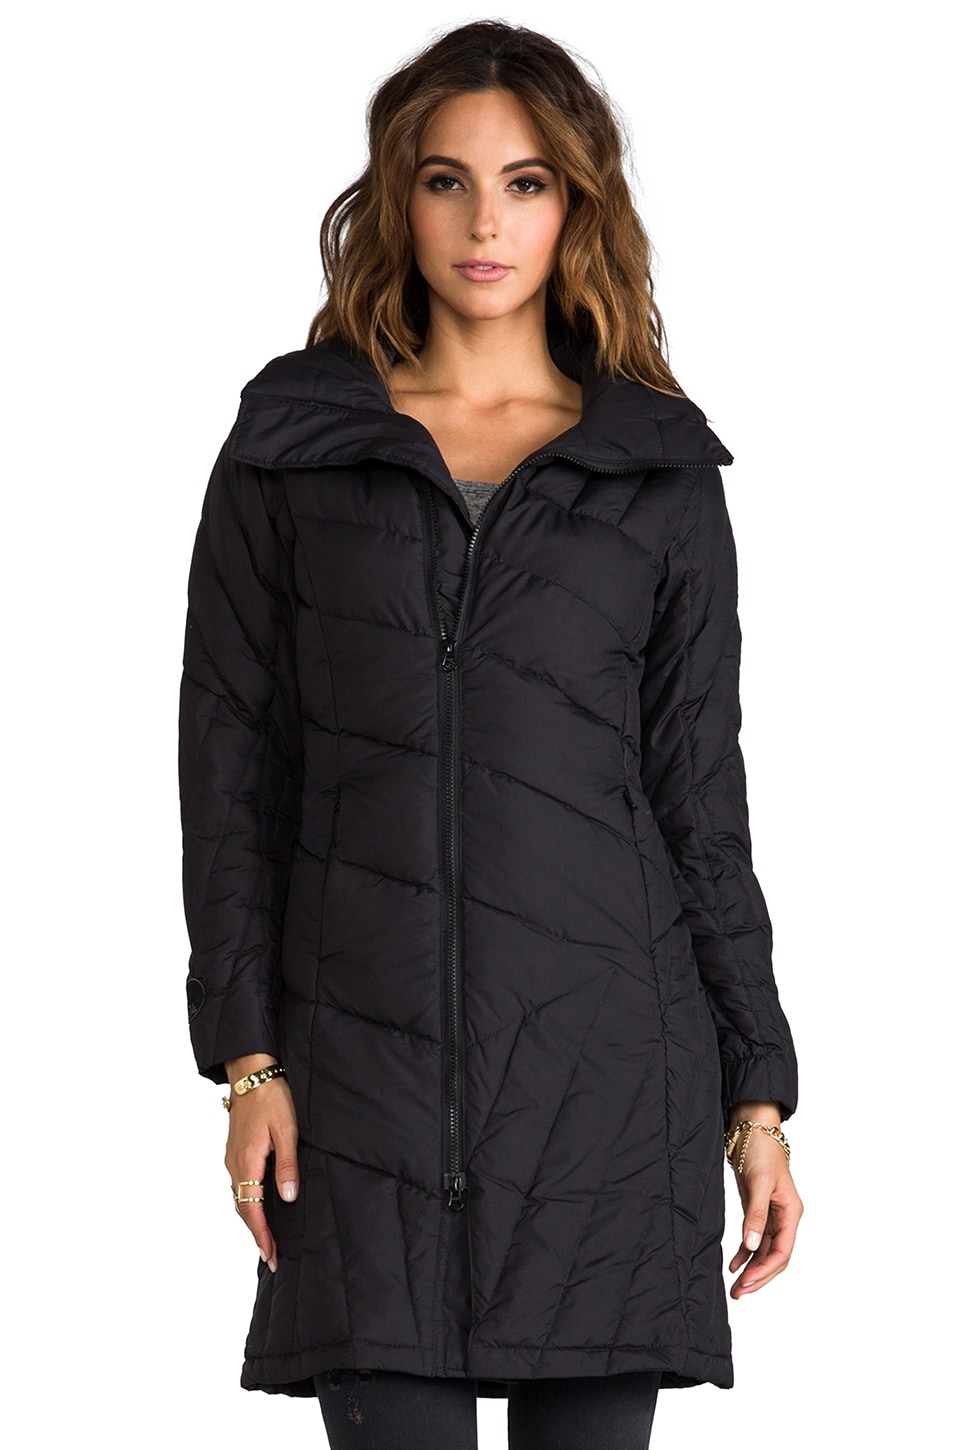 Spiewak Lockport Coat in Black